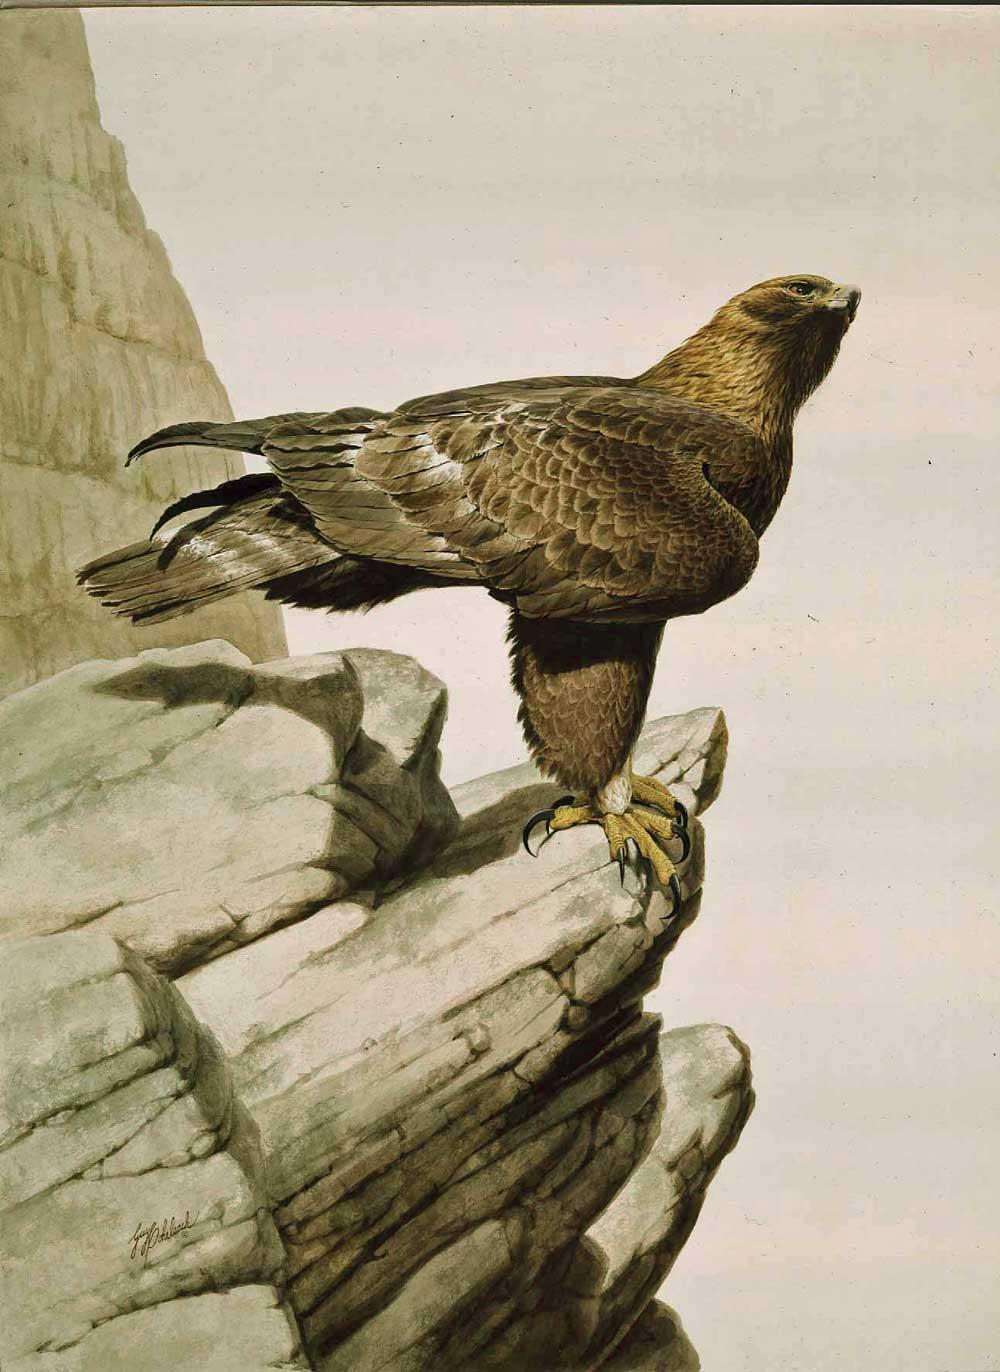 """Golden Eagle""  -  40"" x 30"" ""Golden Eagle""  Birds of Prey  Raptors"